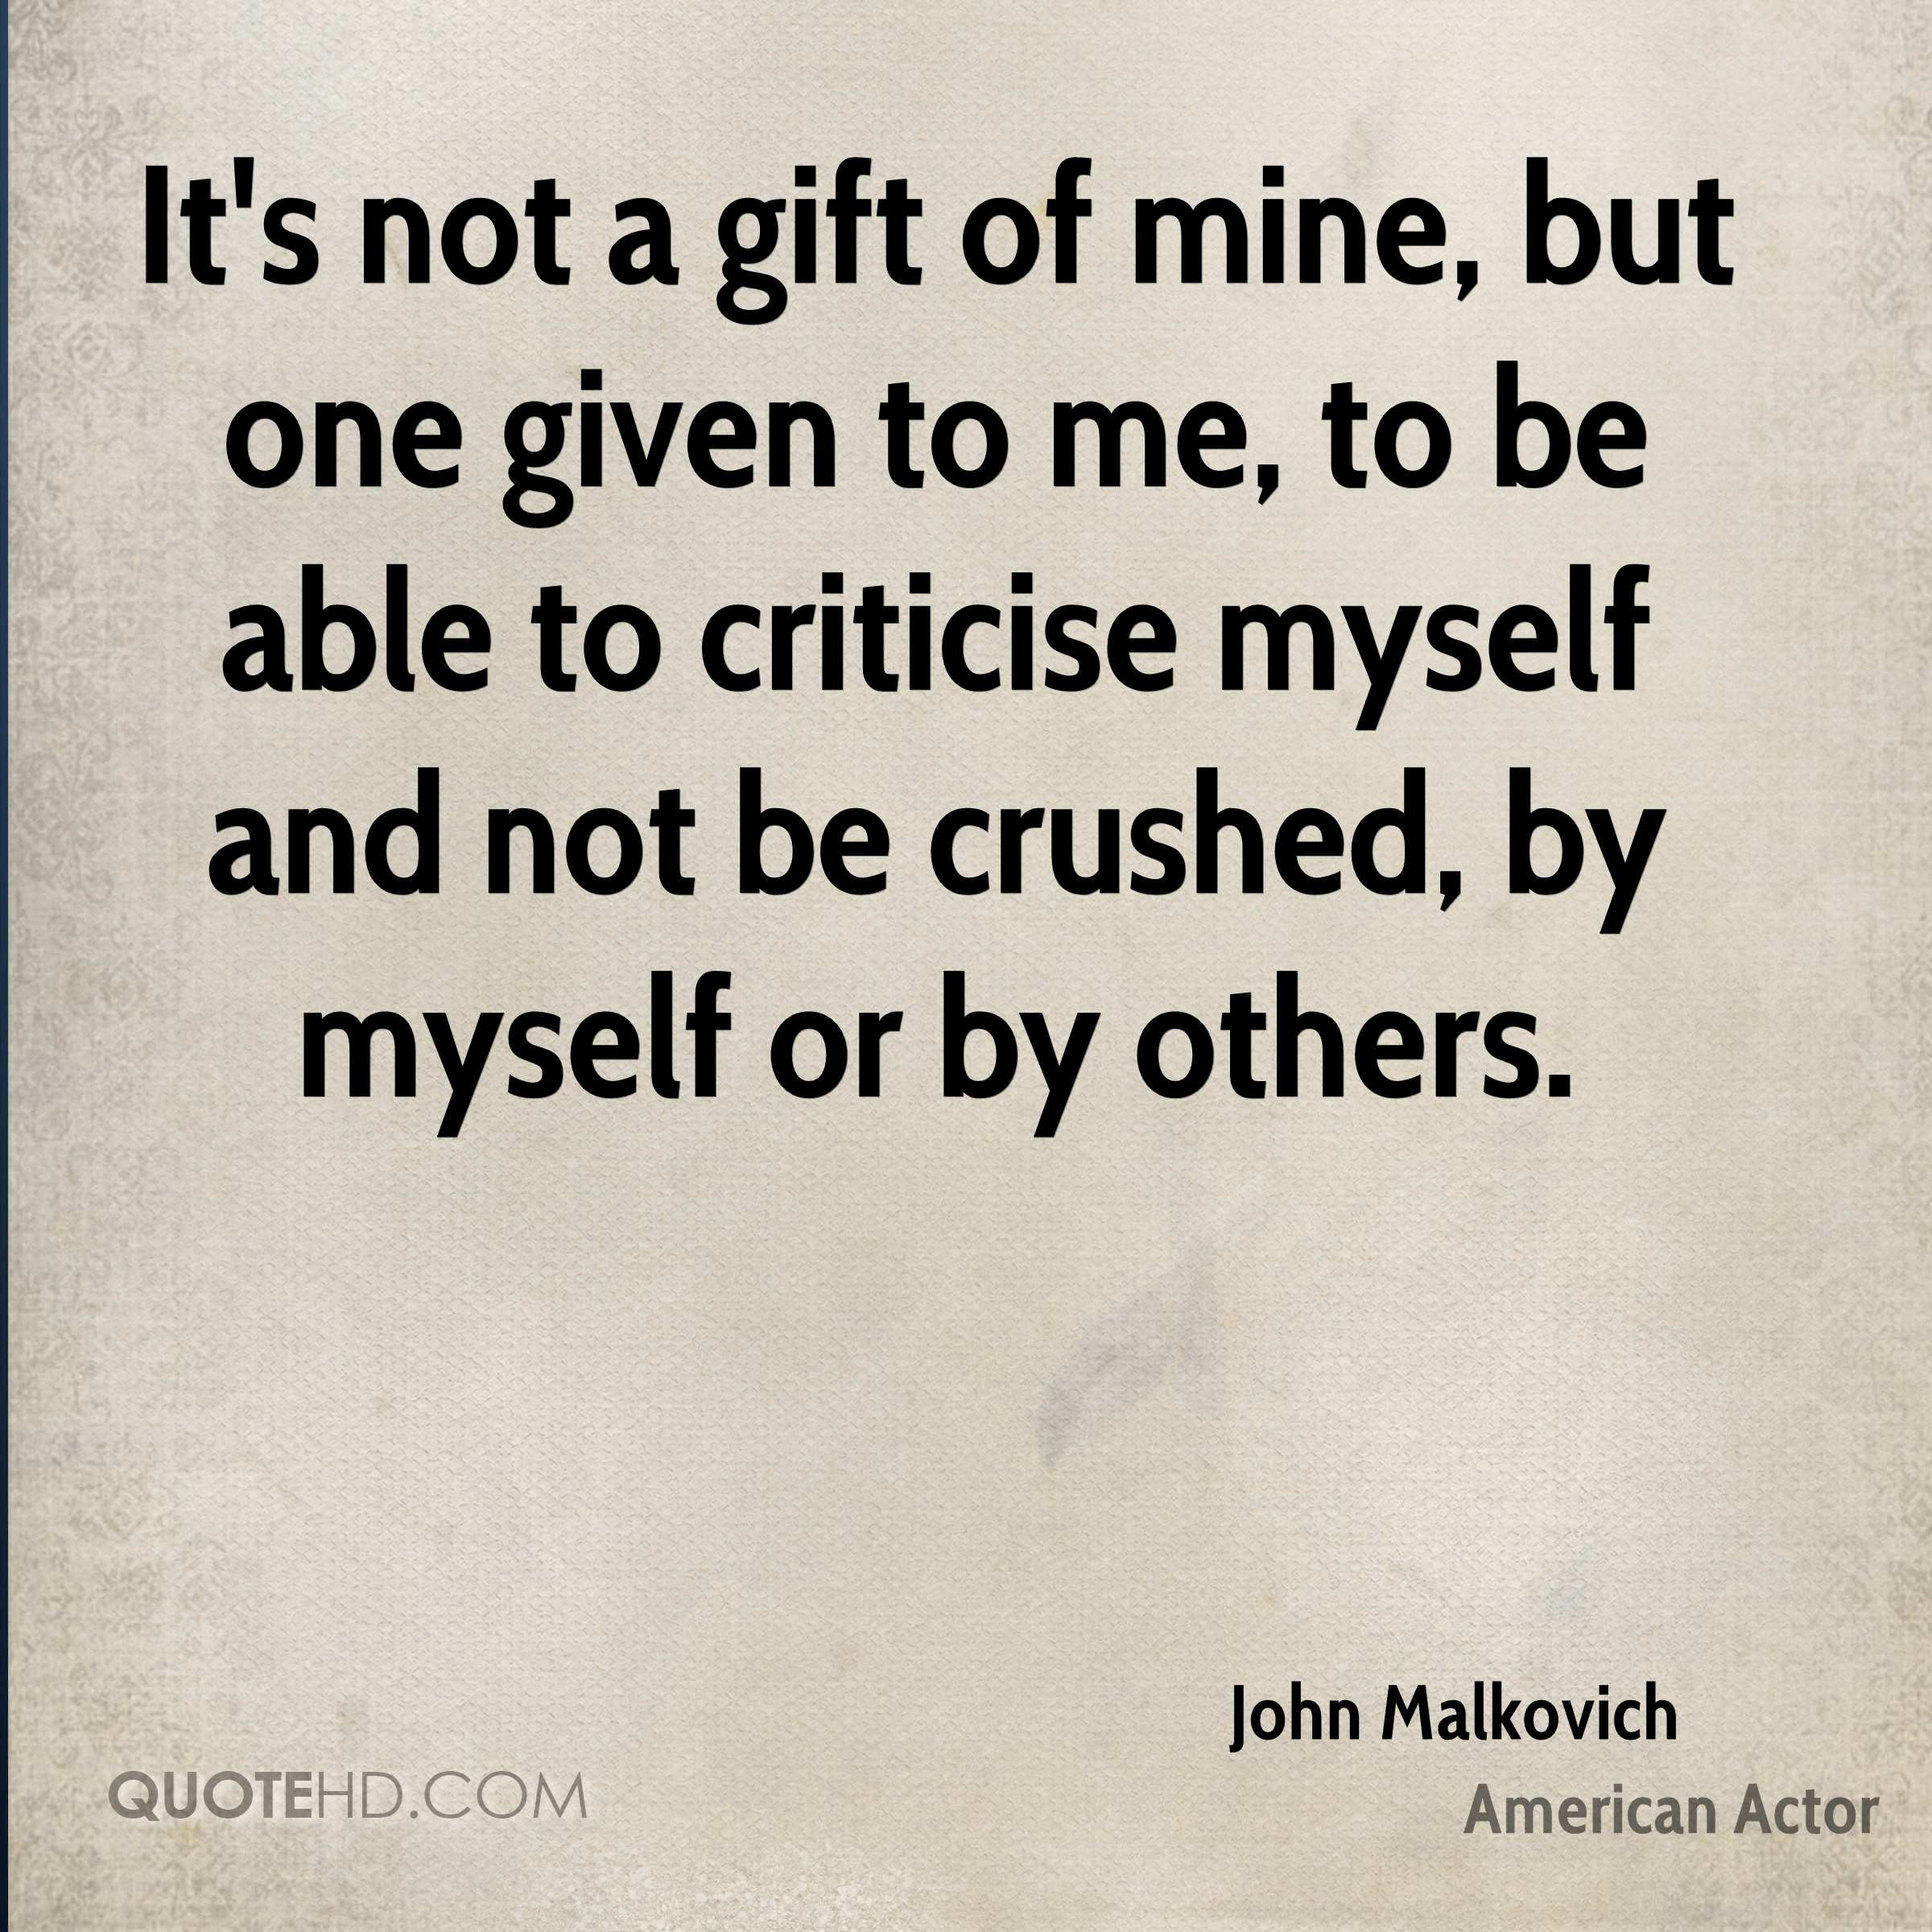 It's not a gift of mine, but one given to me, to be able to criticise myself and not be crushed, by myself or by others.